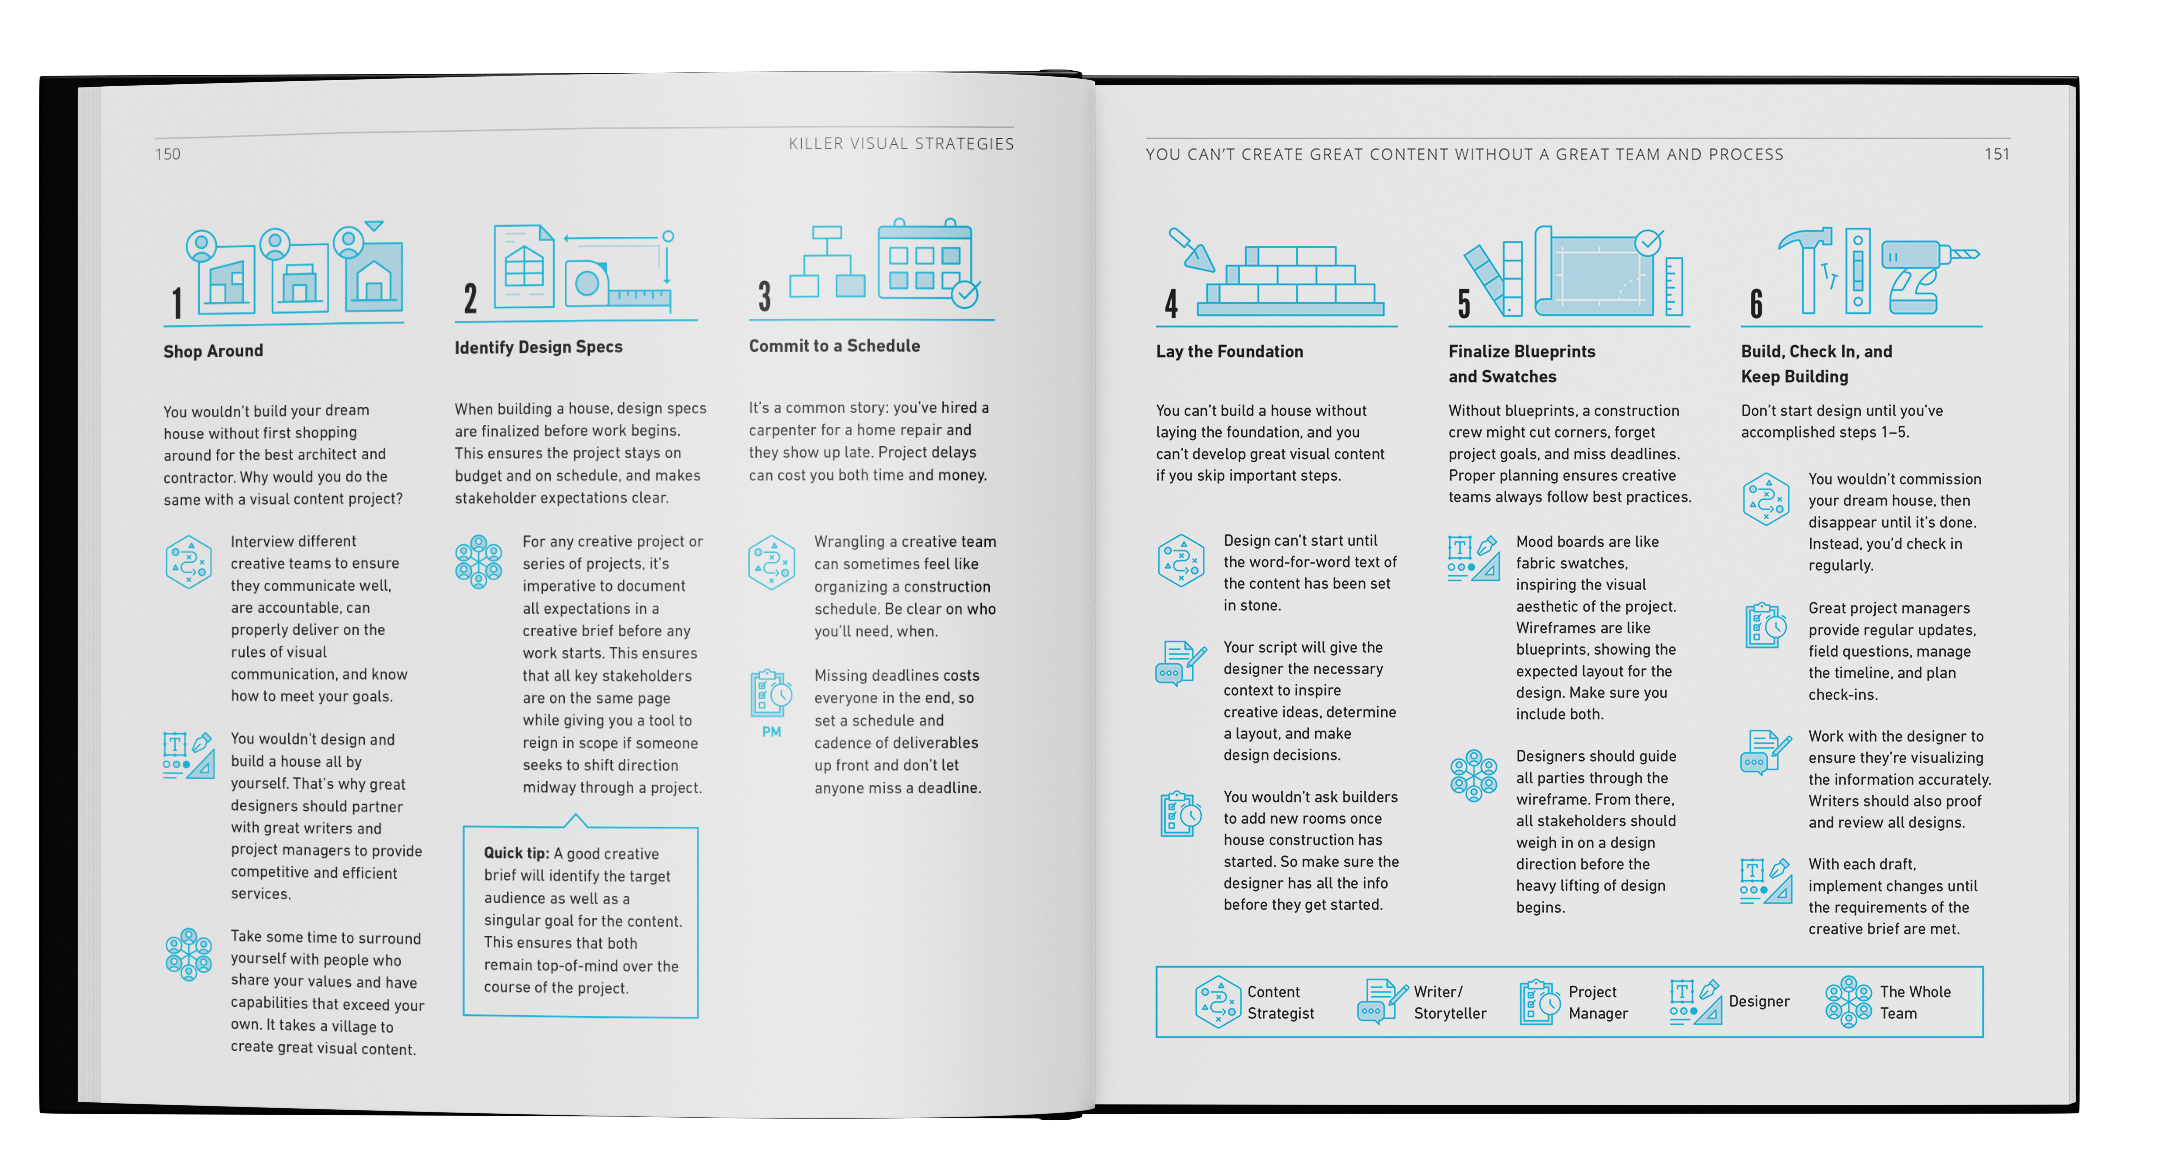 Killer Visual Strategies book showing content strategy management